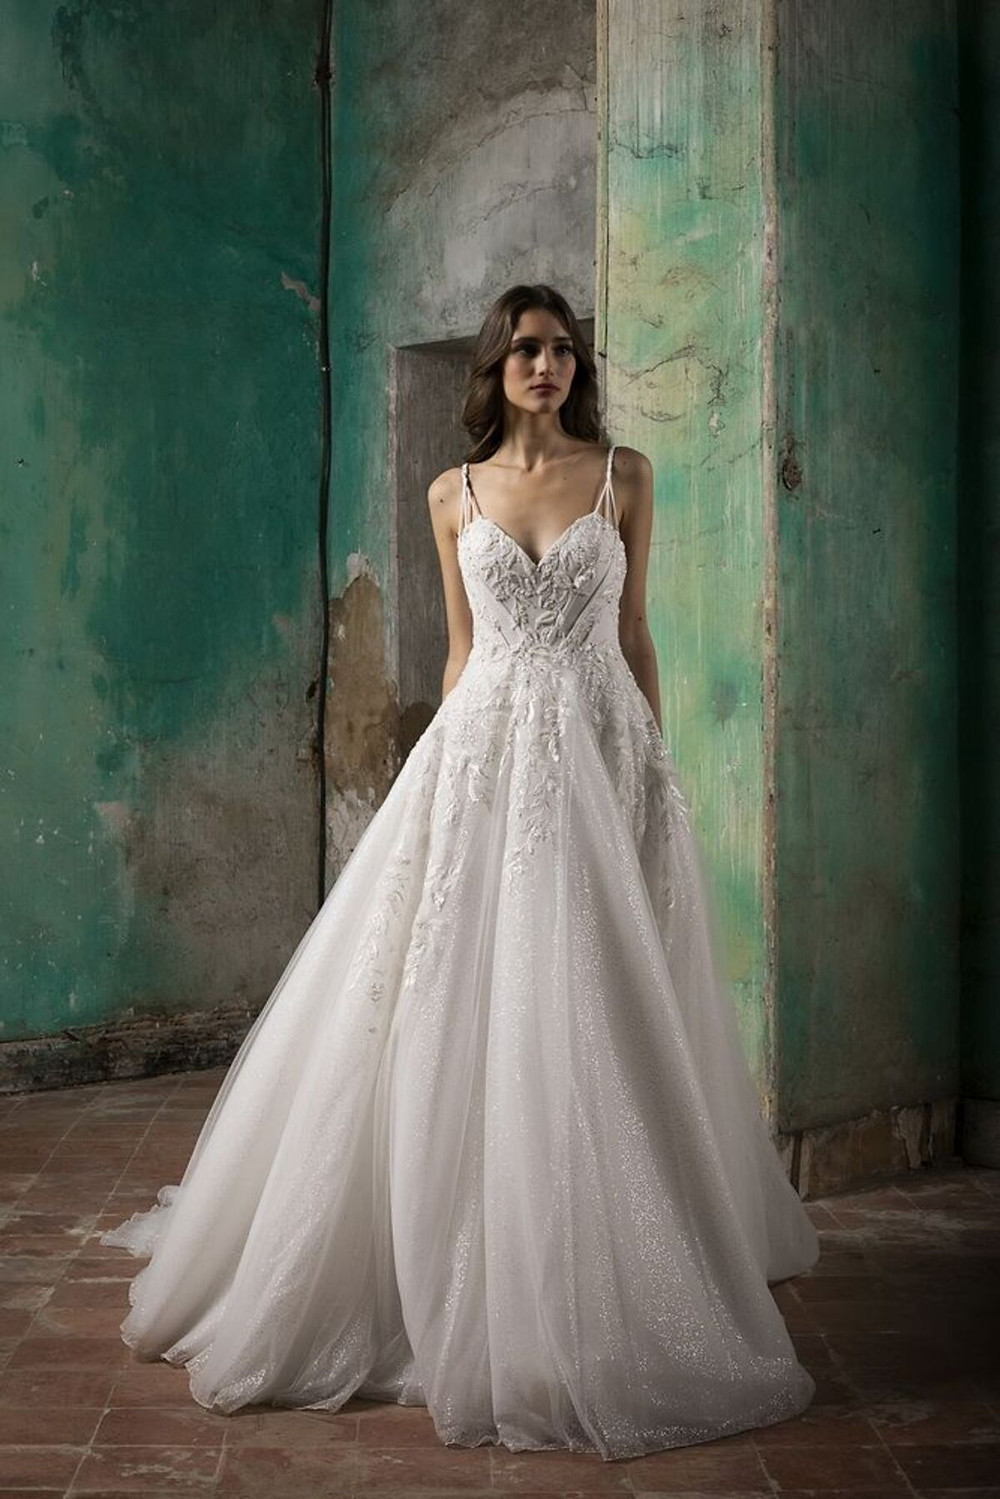 A voluminous wedding gown featuring floral embroideries finished with sequin detailing